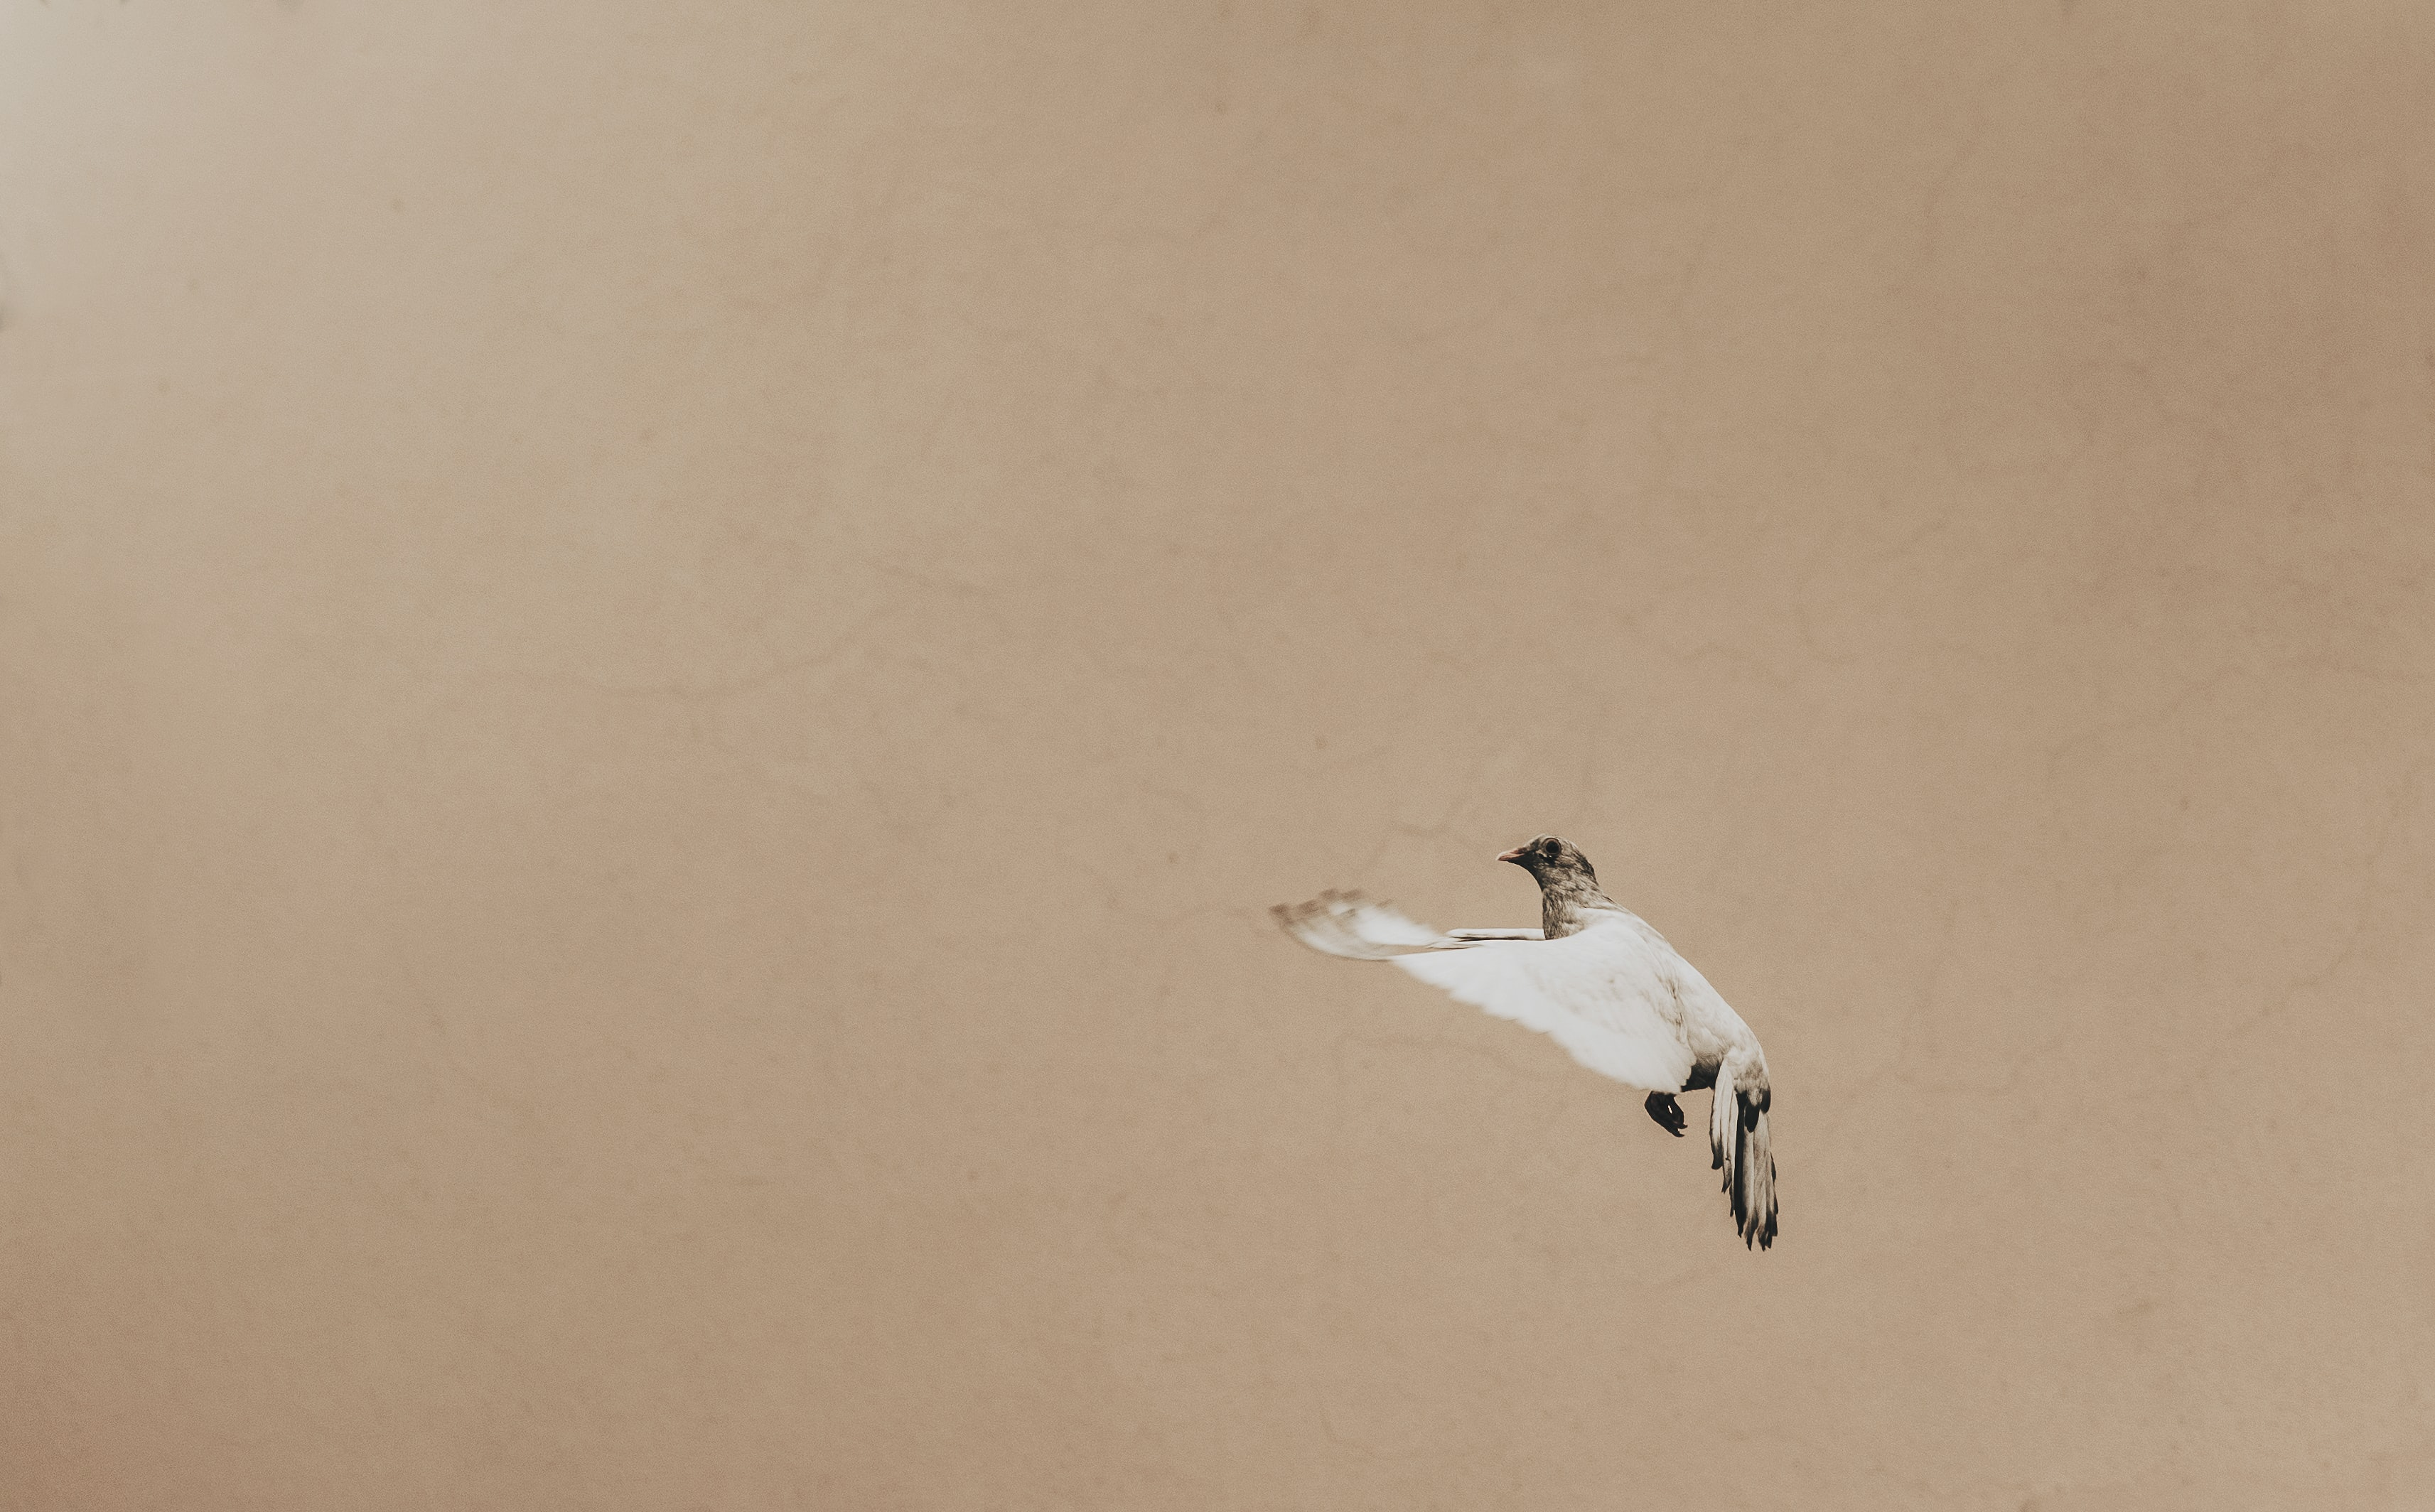 white and brown bird flying on air